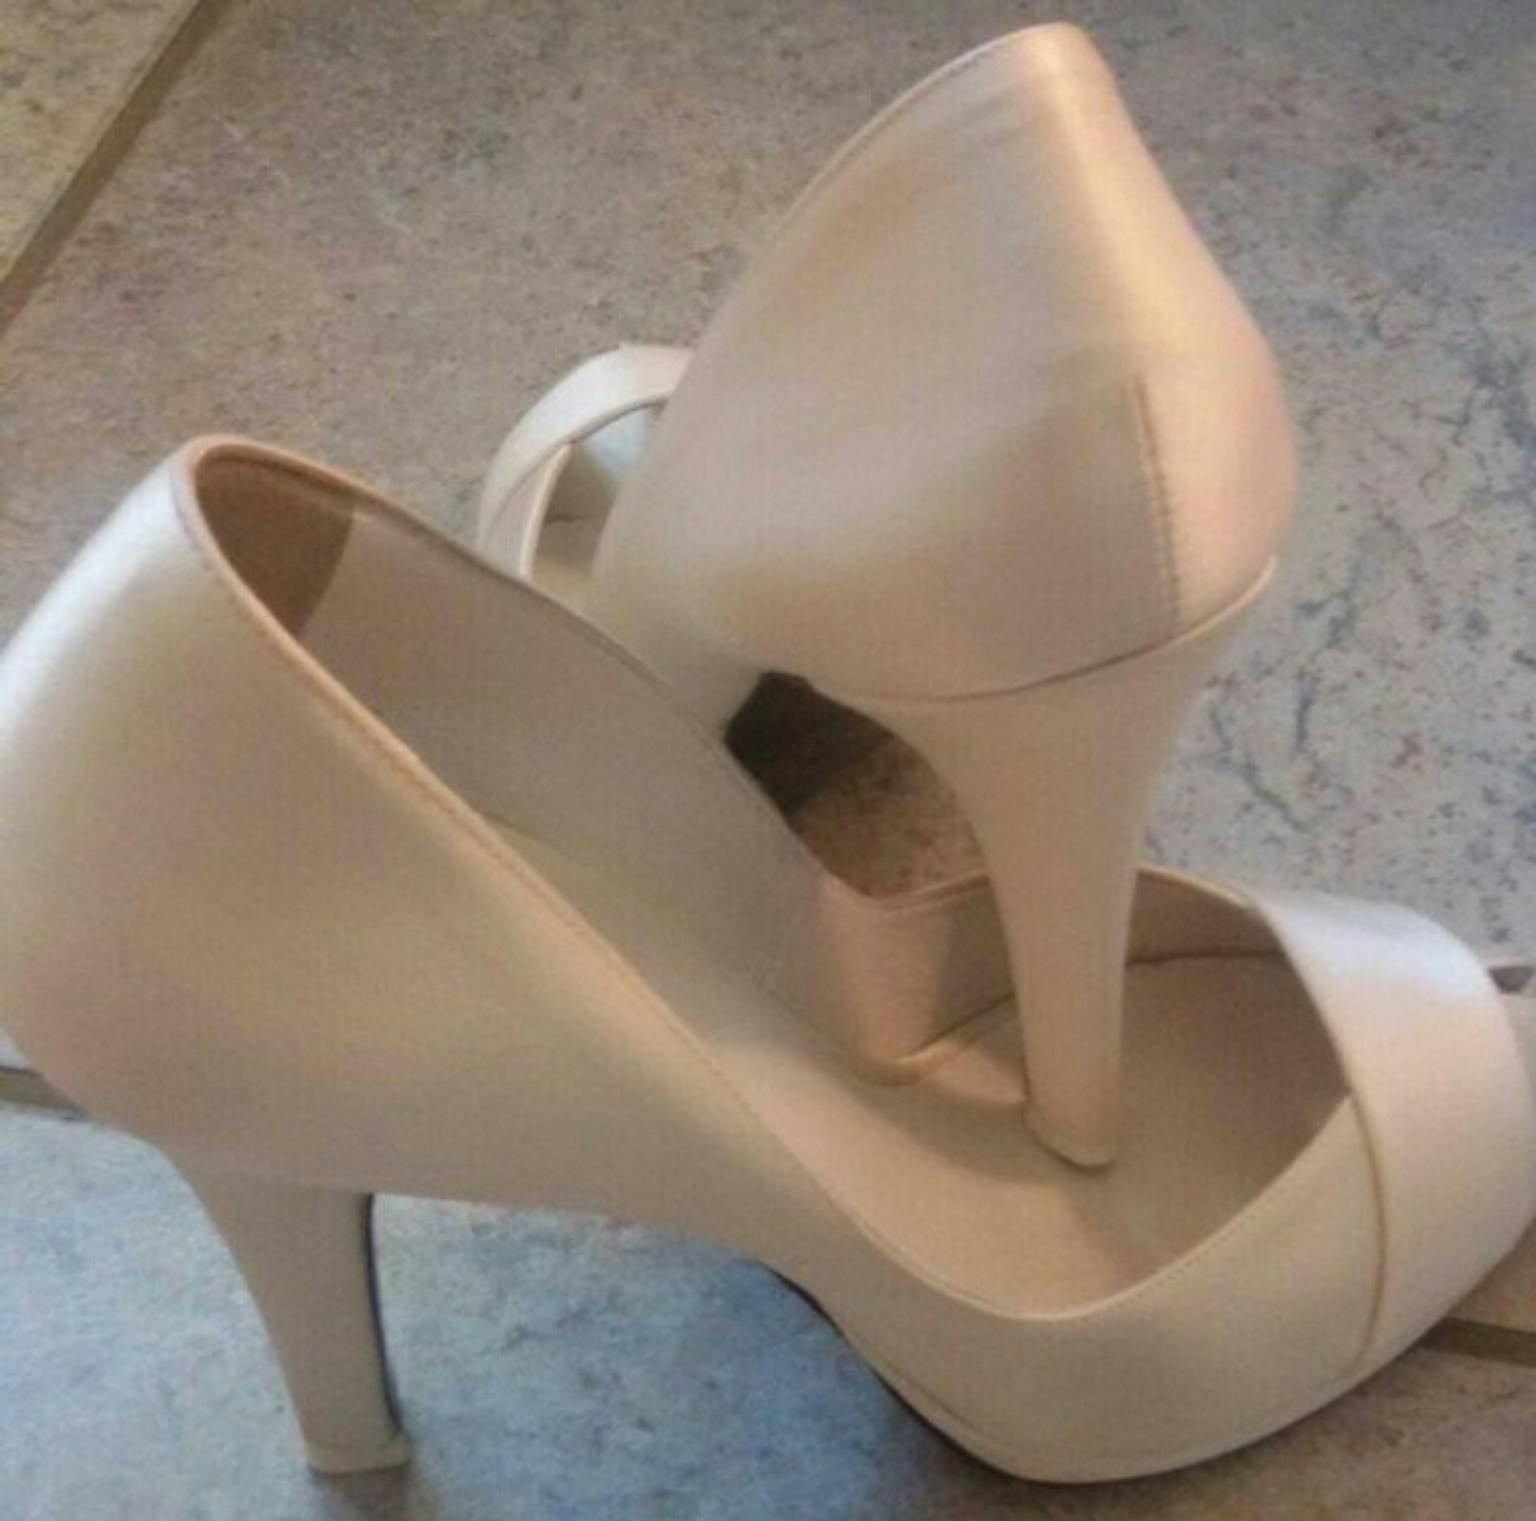 Scarpe Sposa Lorusso.Scarpe Sposa Lorusso In 72017 Ostuni For 150 00 For Sale Shpock